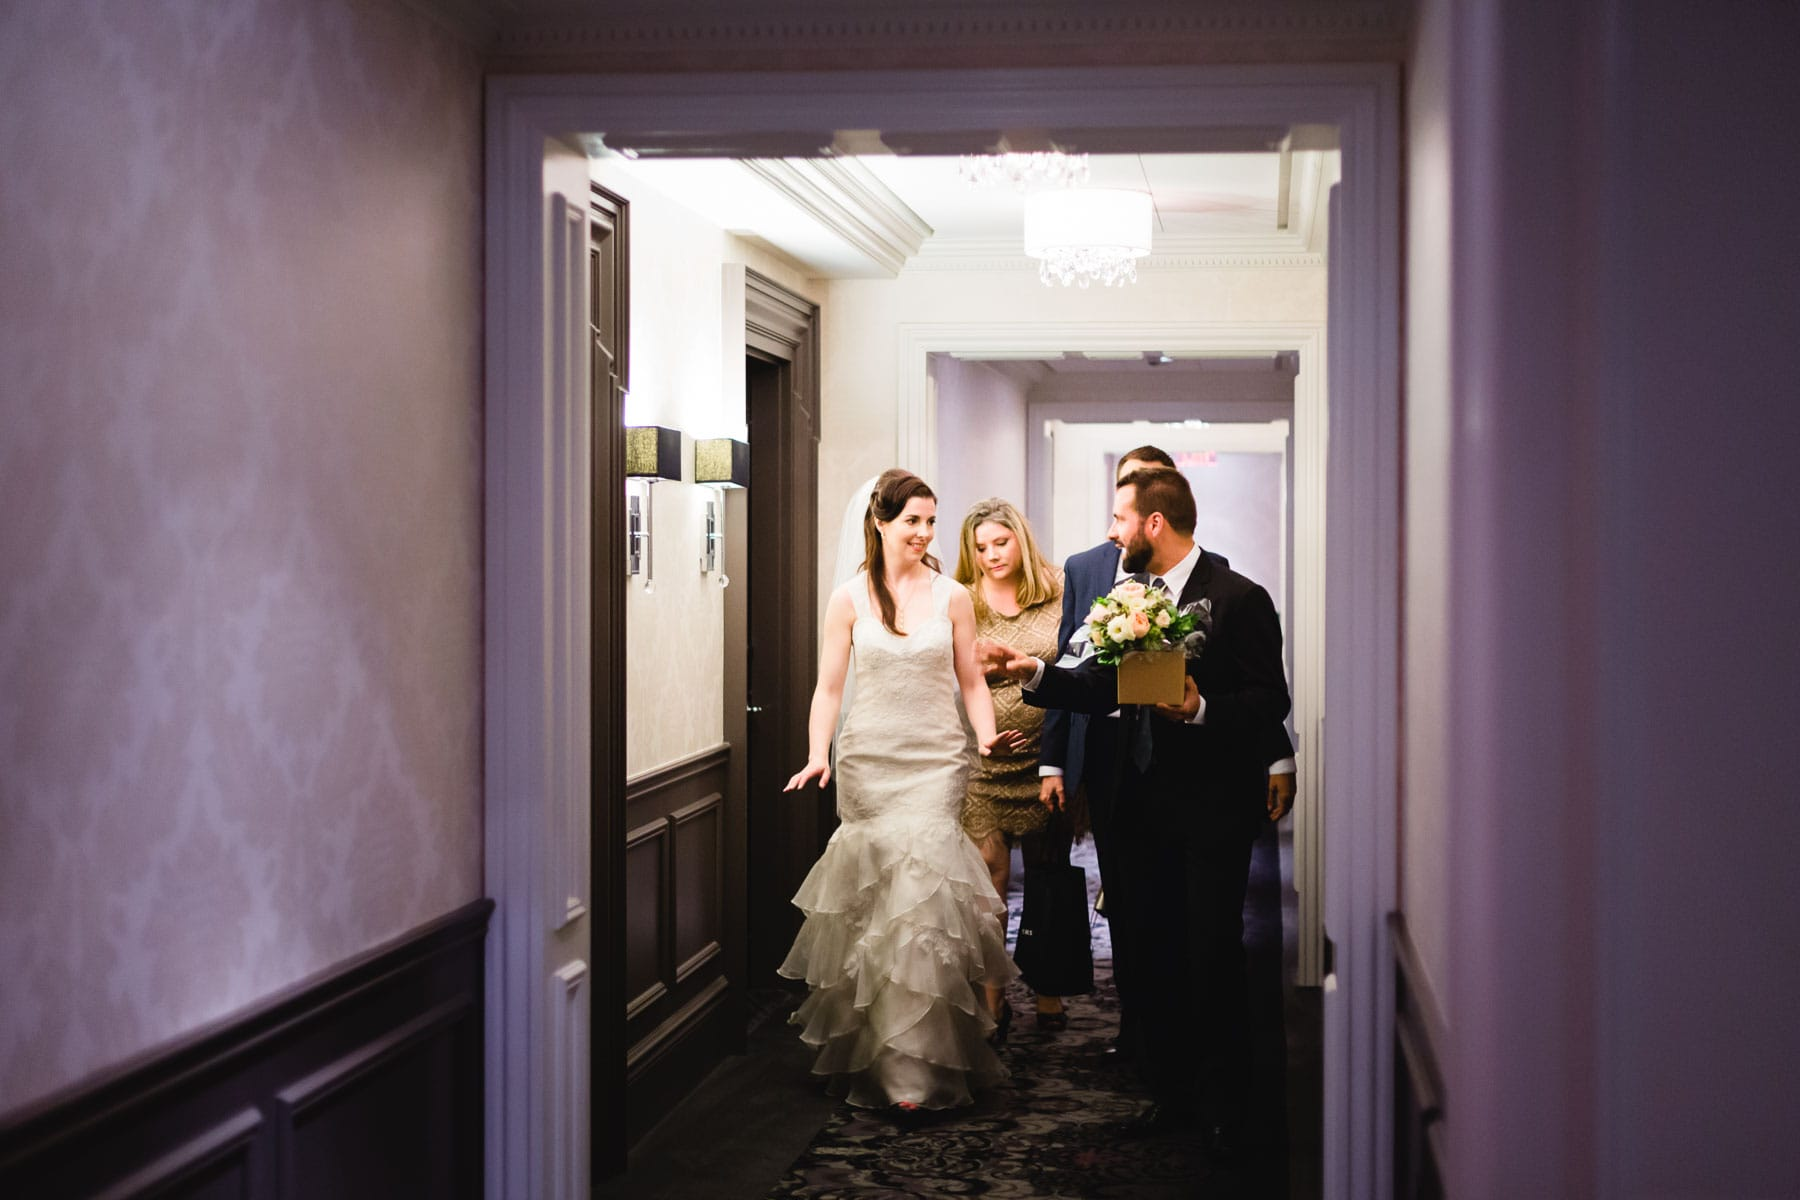 The bride, two men, and one woman walk down the Trump Hotel corridor.